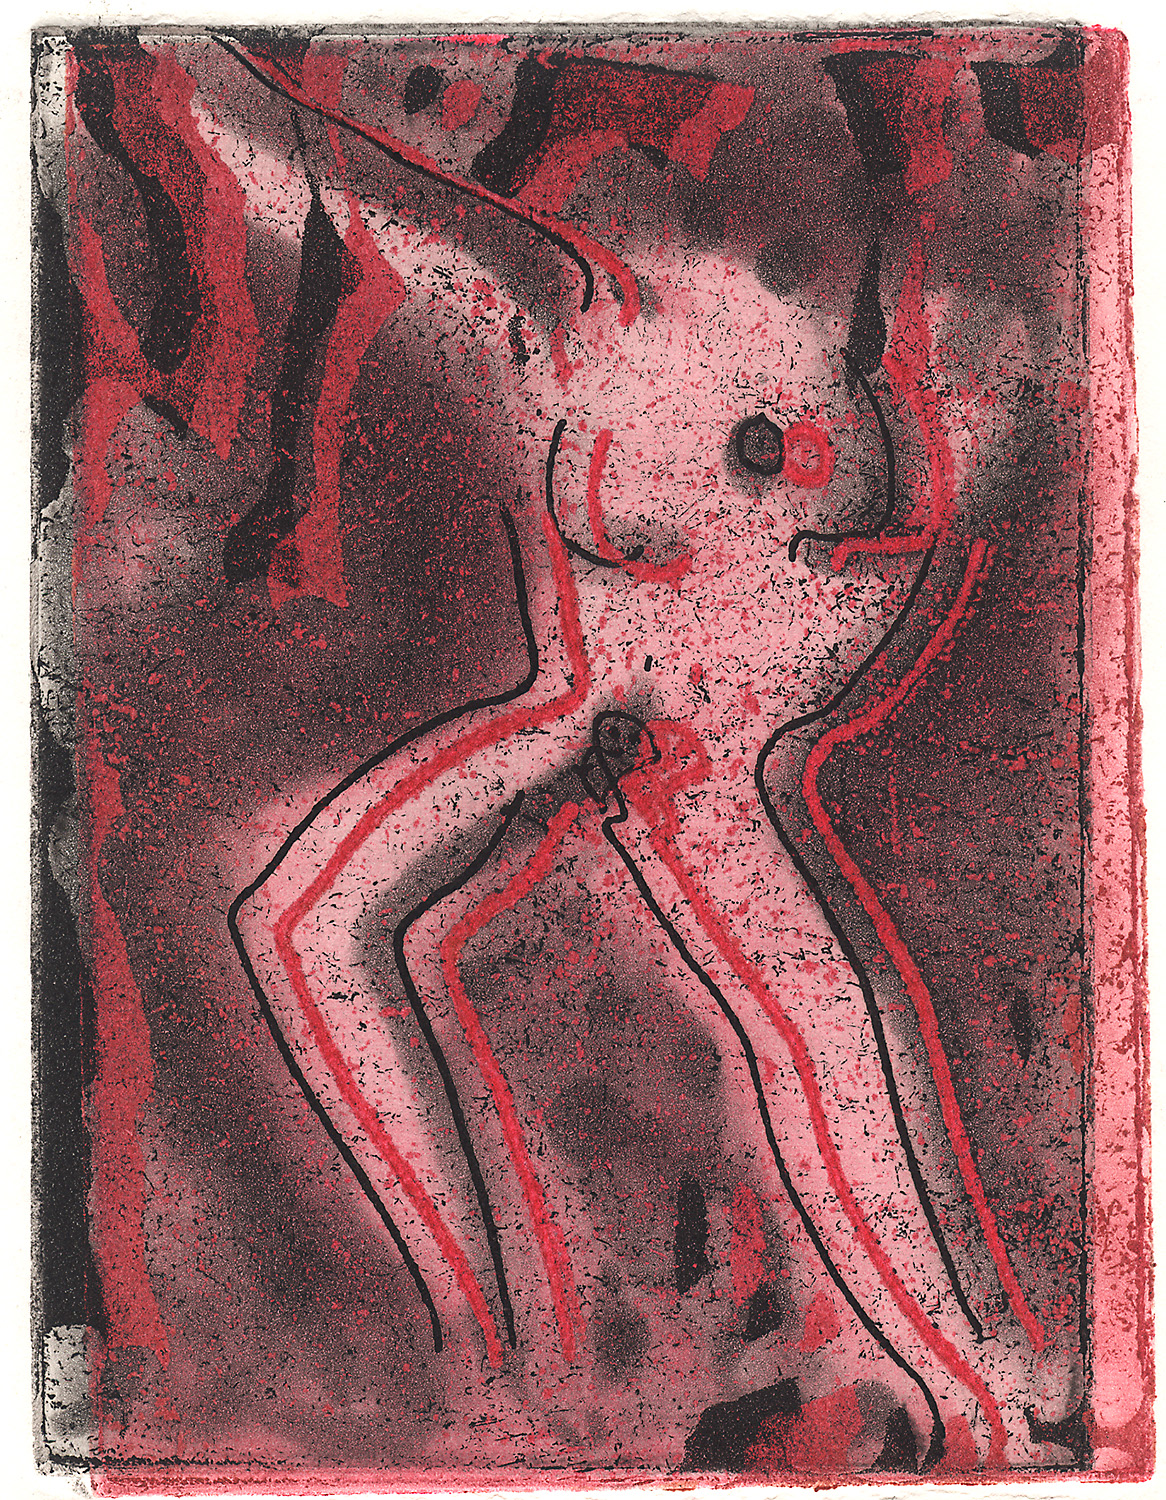 Indira-Cesarine-Portrait-of-a-Girl-Double-Print-Black-and-Red-Intaglio-Ink-on-Rag-Paper-The-Sappho-Series-1993.jpg